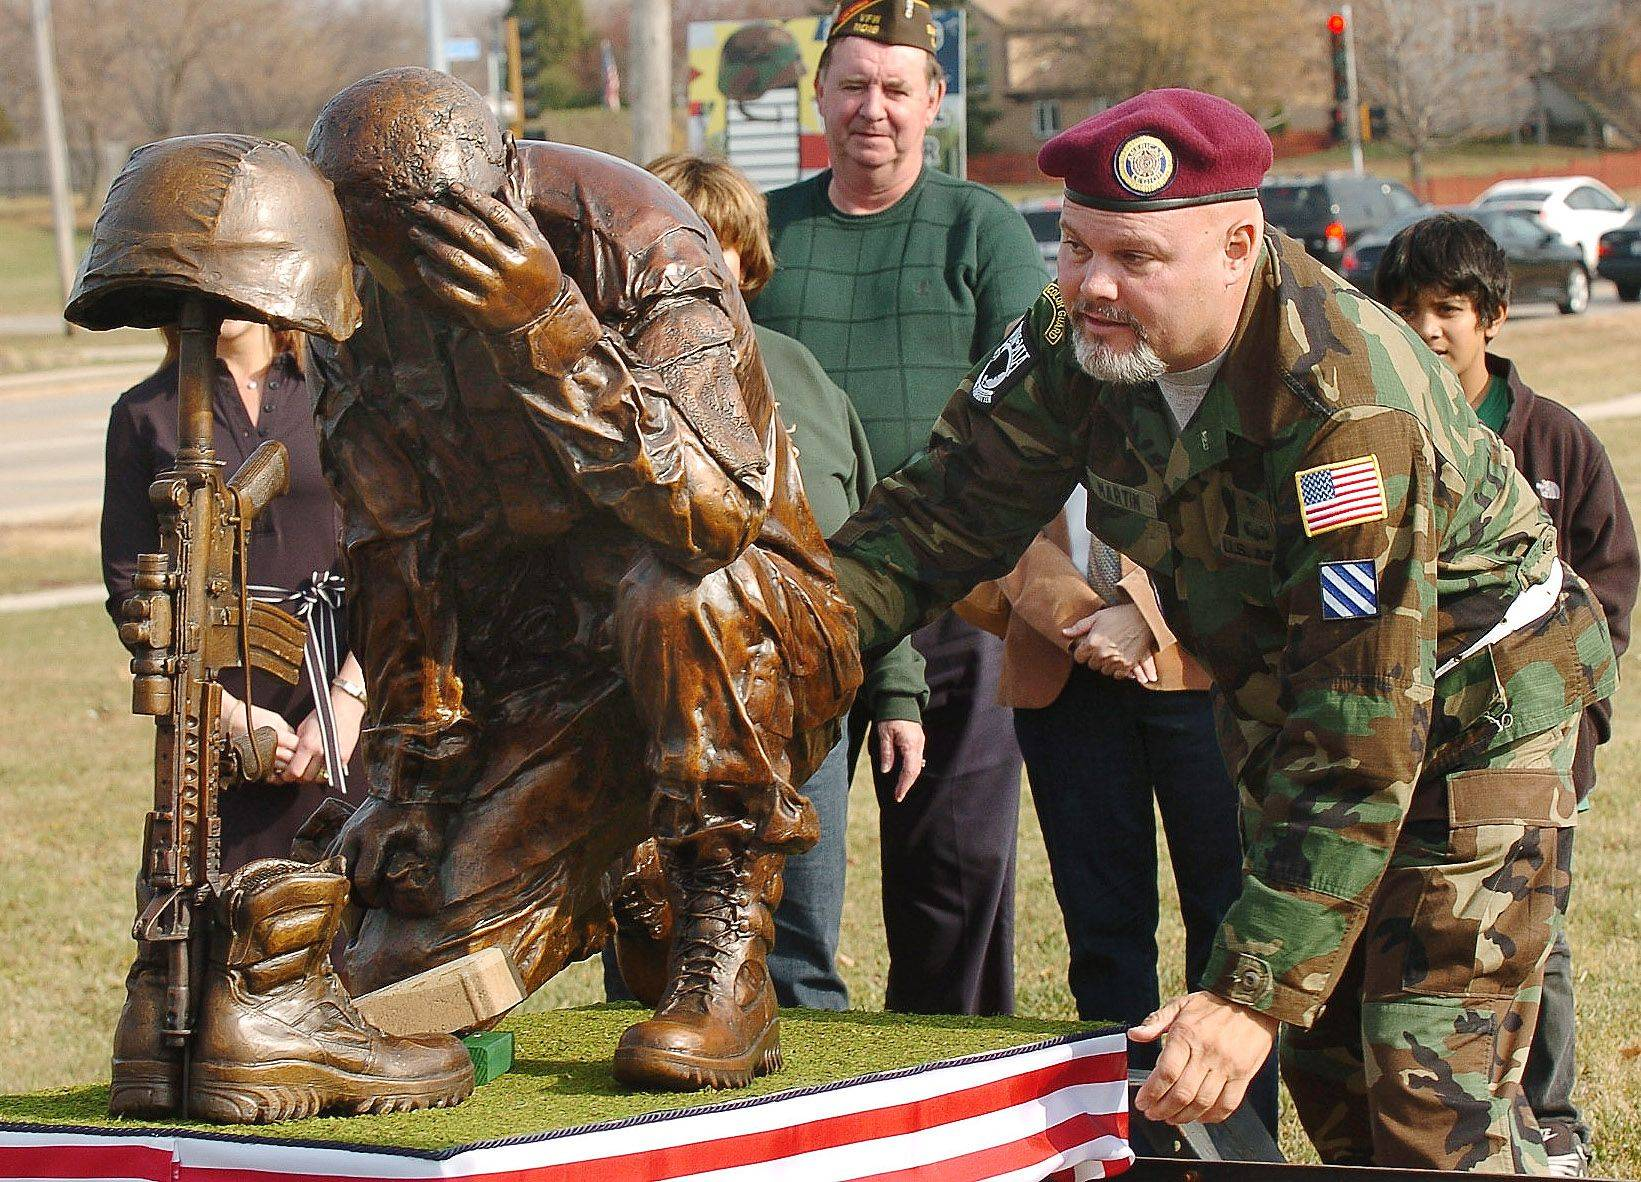 Greg Martin, of American Legion Post 1212 straightens the statue that he designed after unveiling it on the future Veterans Memorial Site in Bartlett during Veterans Day ceremonies.